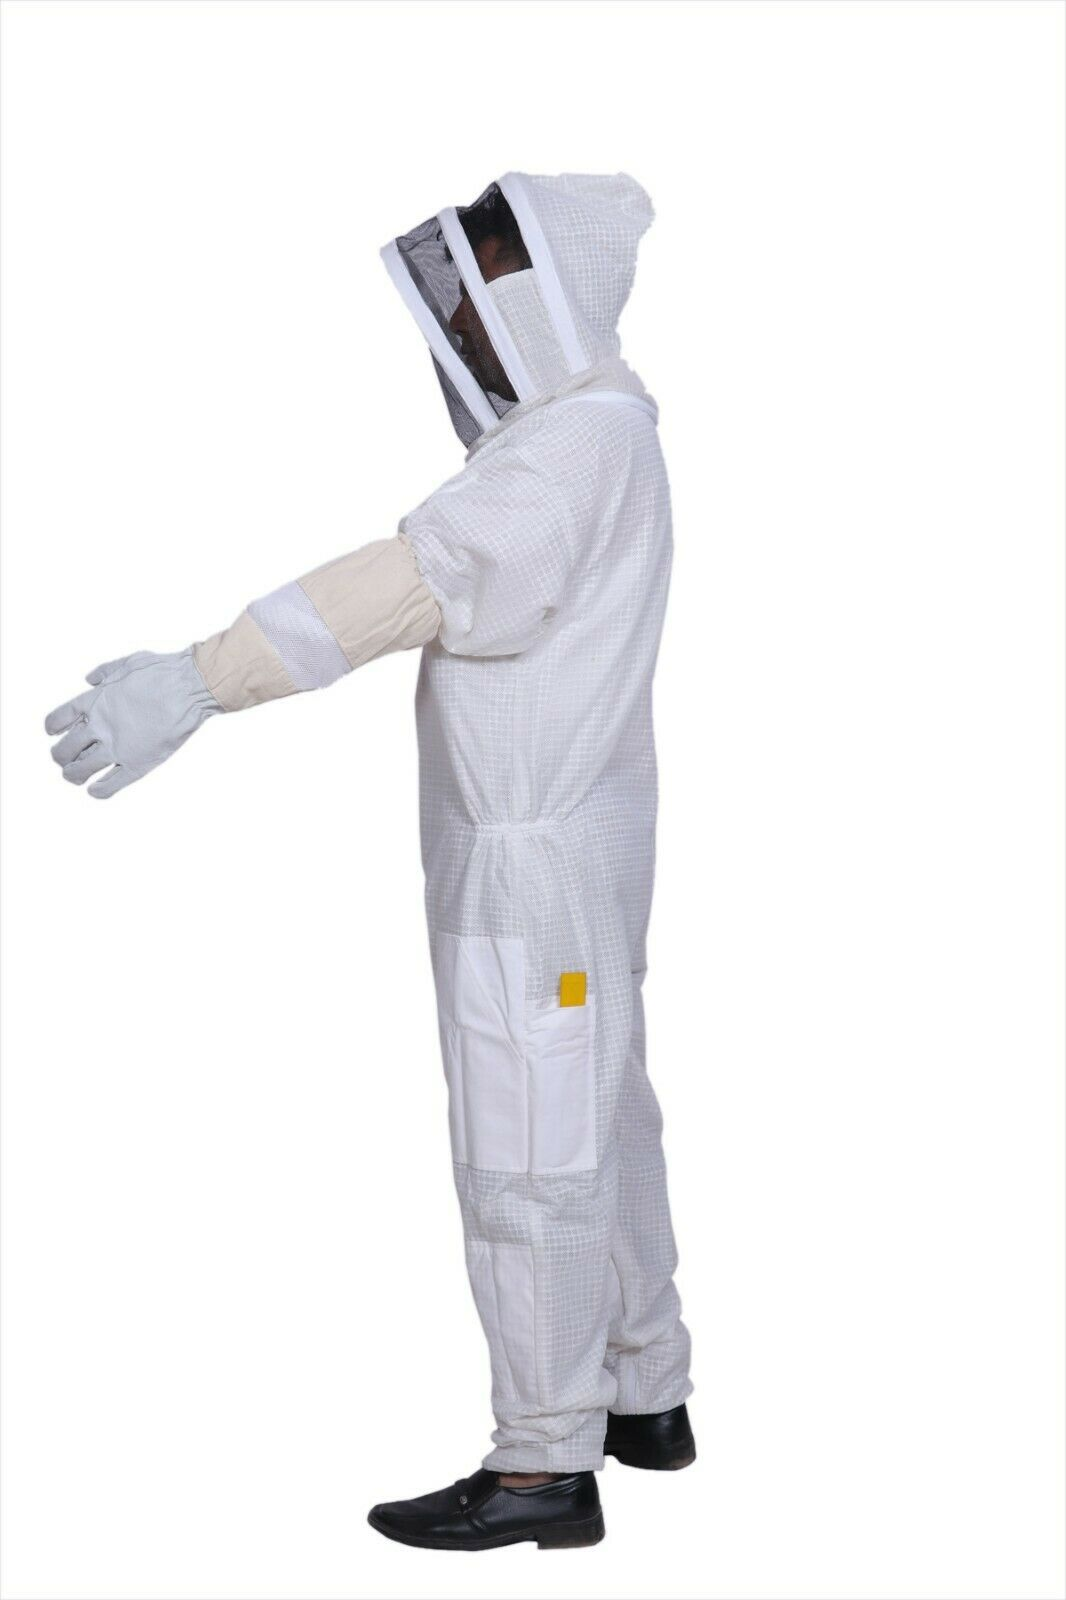 8XL Ventilated Bee Suit 3 layer mesh Beekeeping costume Beekeeper Ultra vented